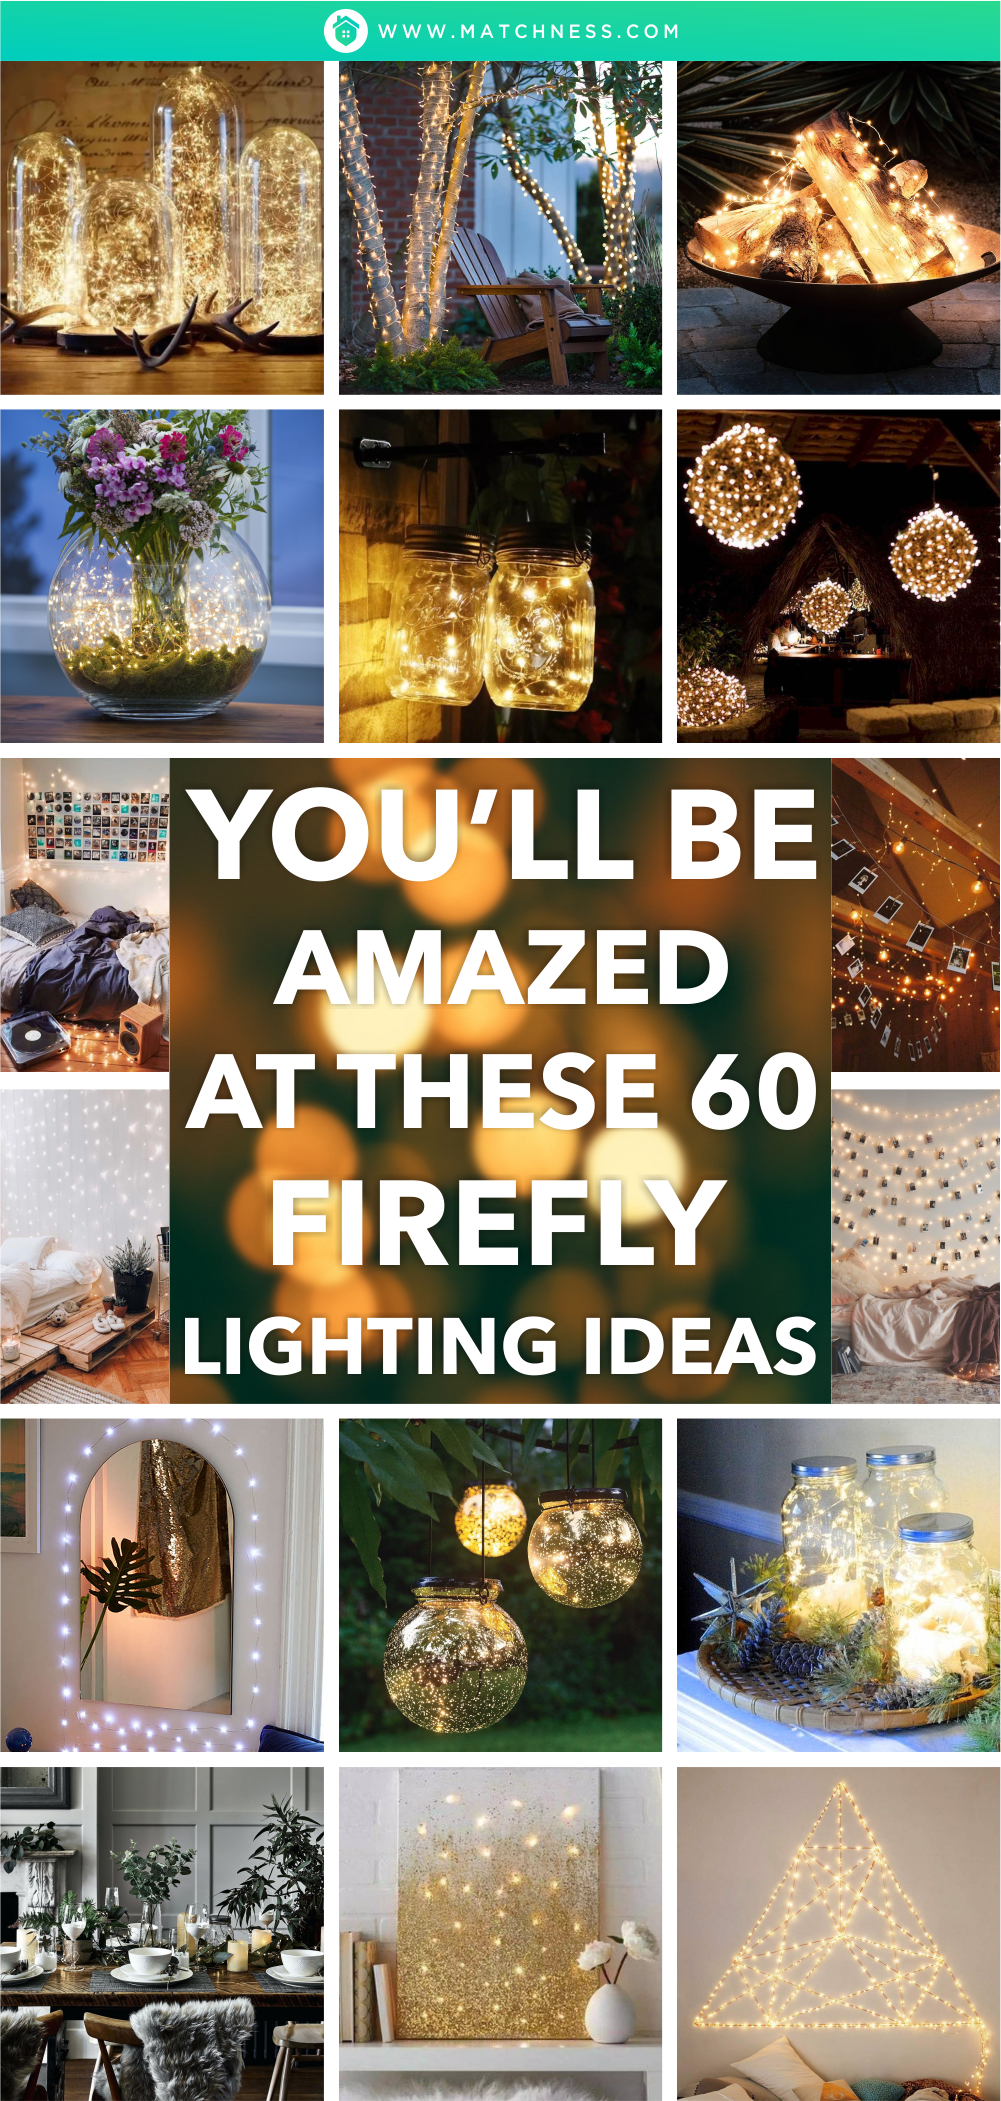 Youll-be-amazed-at-these-60-firefly-lighting-ideas1